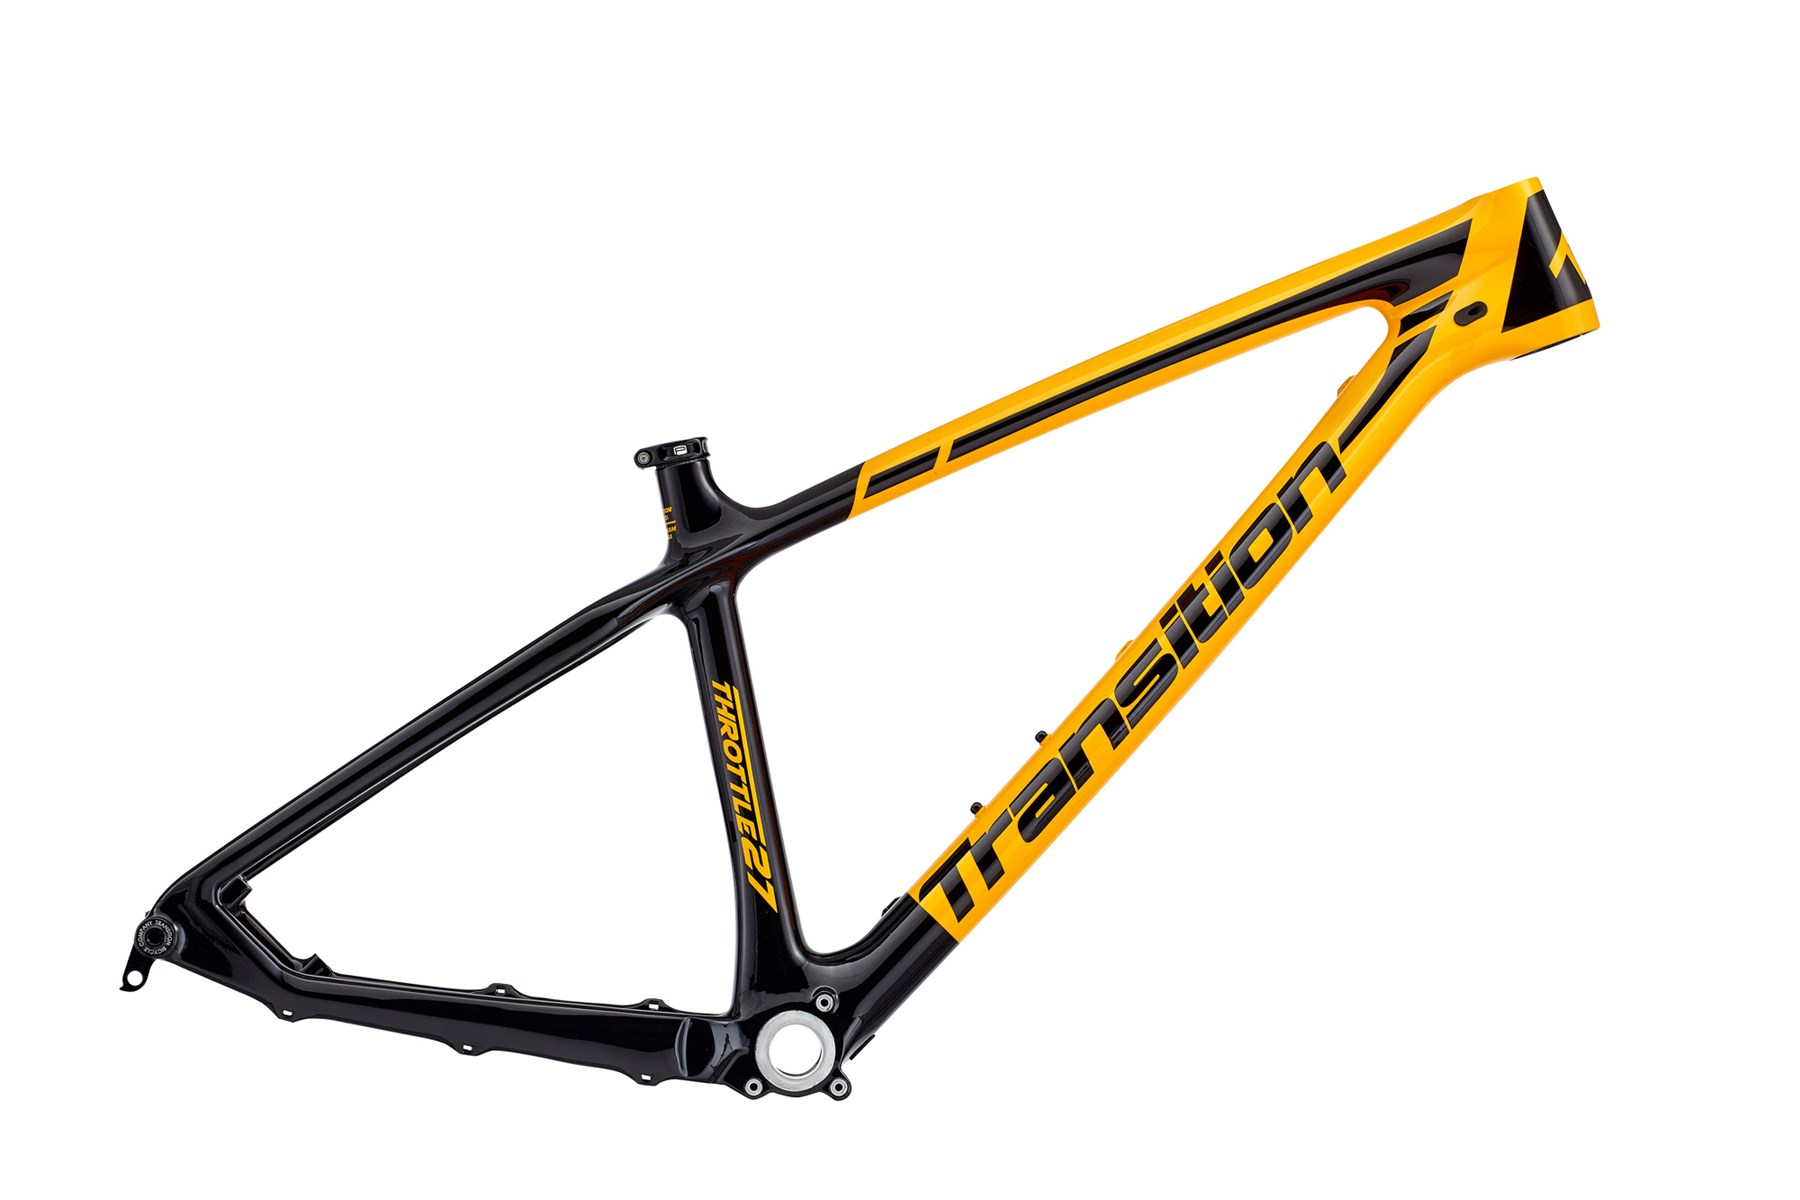 transition throttle hot mustard carbon frame bike2017_main_throttle_highres bike2017_side_throttle_highres bikes2017_action_throttle